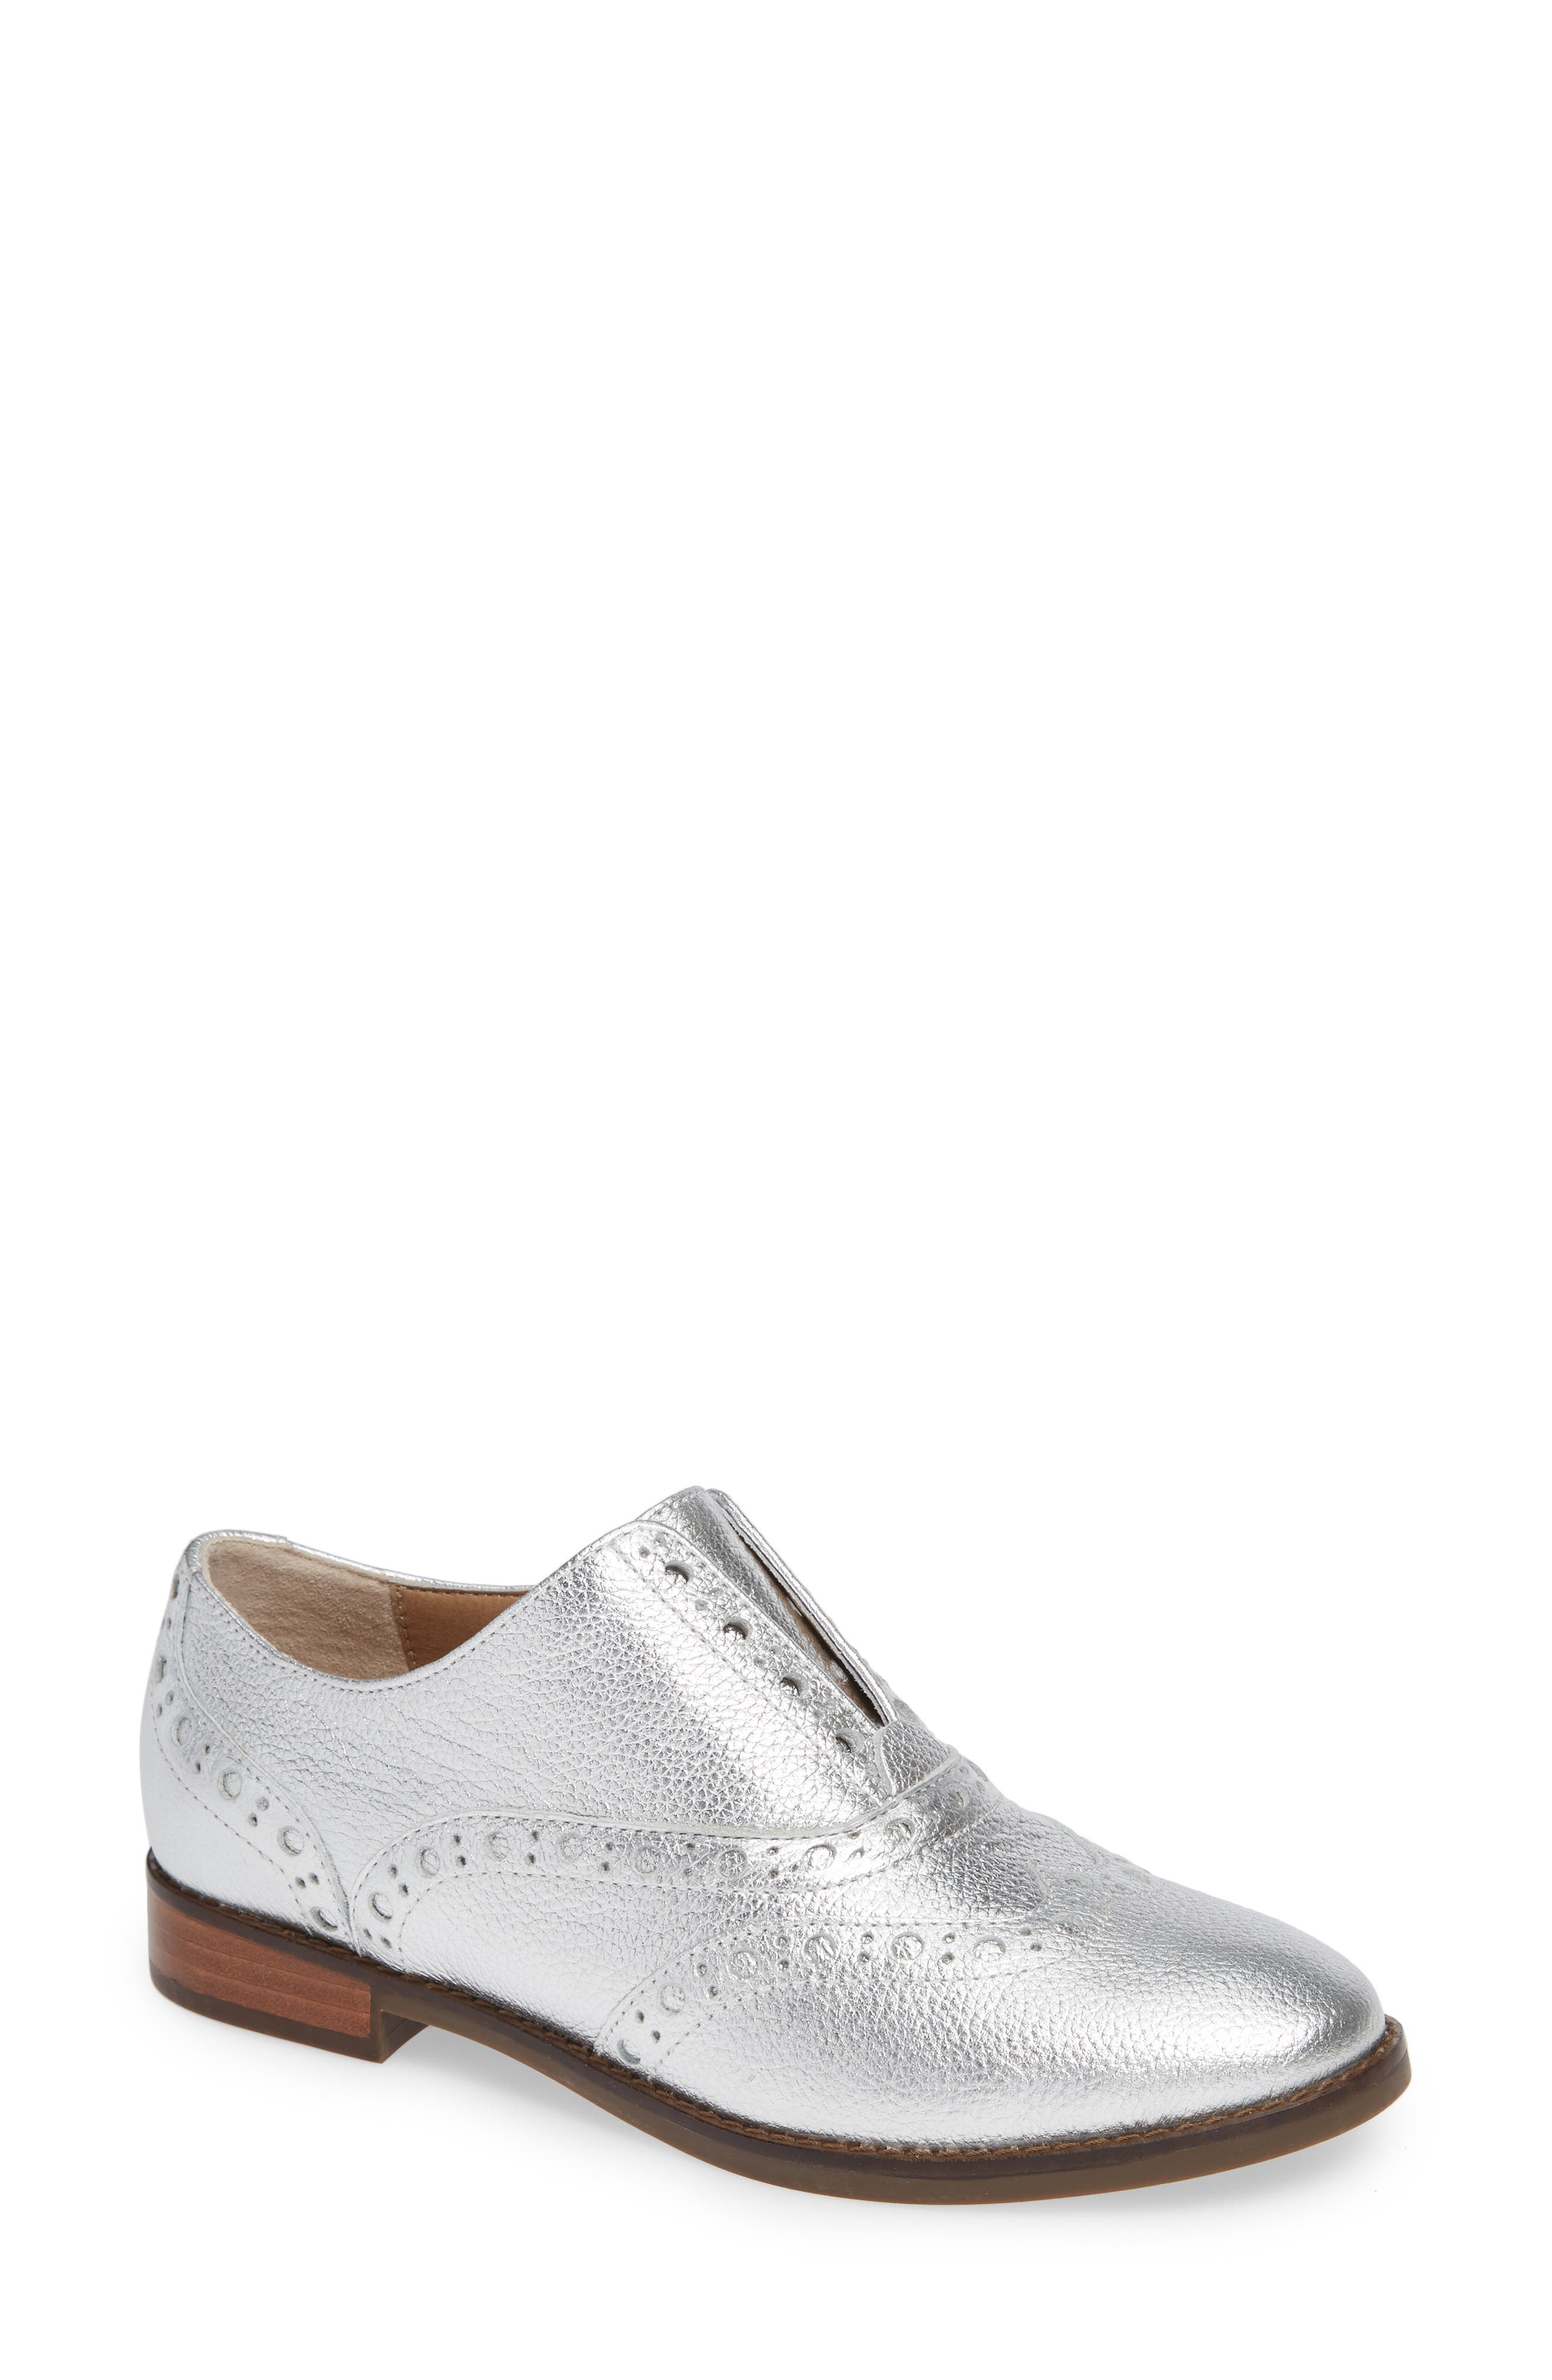 Hadley Wingtip,                             Main thumbnail 1, color,                             SILVER LEATHER